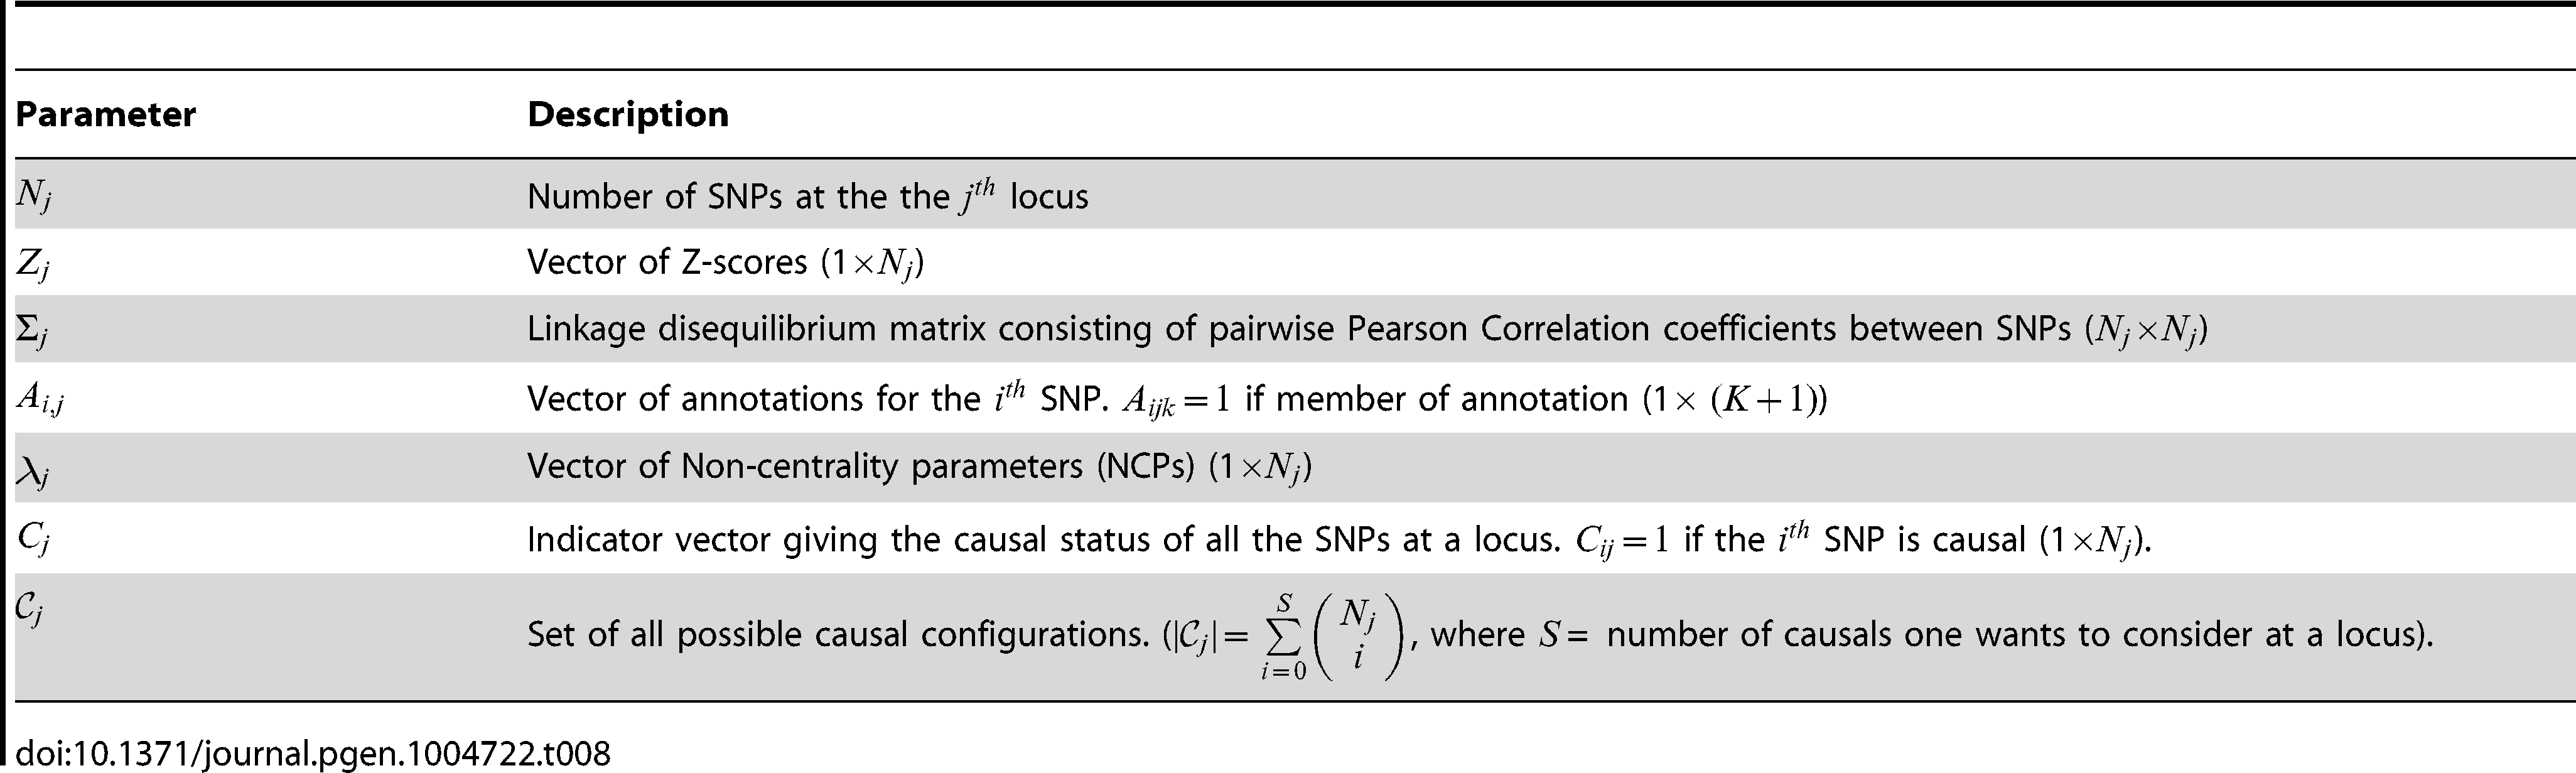 List of model parameters for the  locus  where L is the total number of fine-mapping loci).